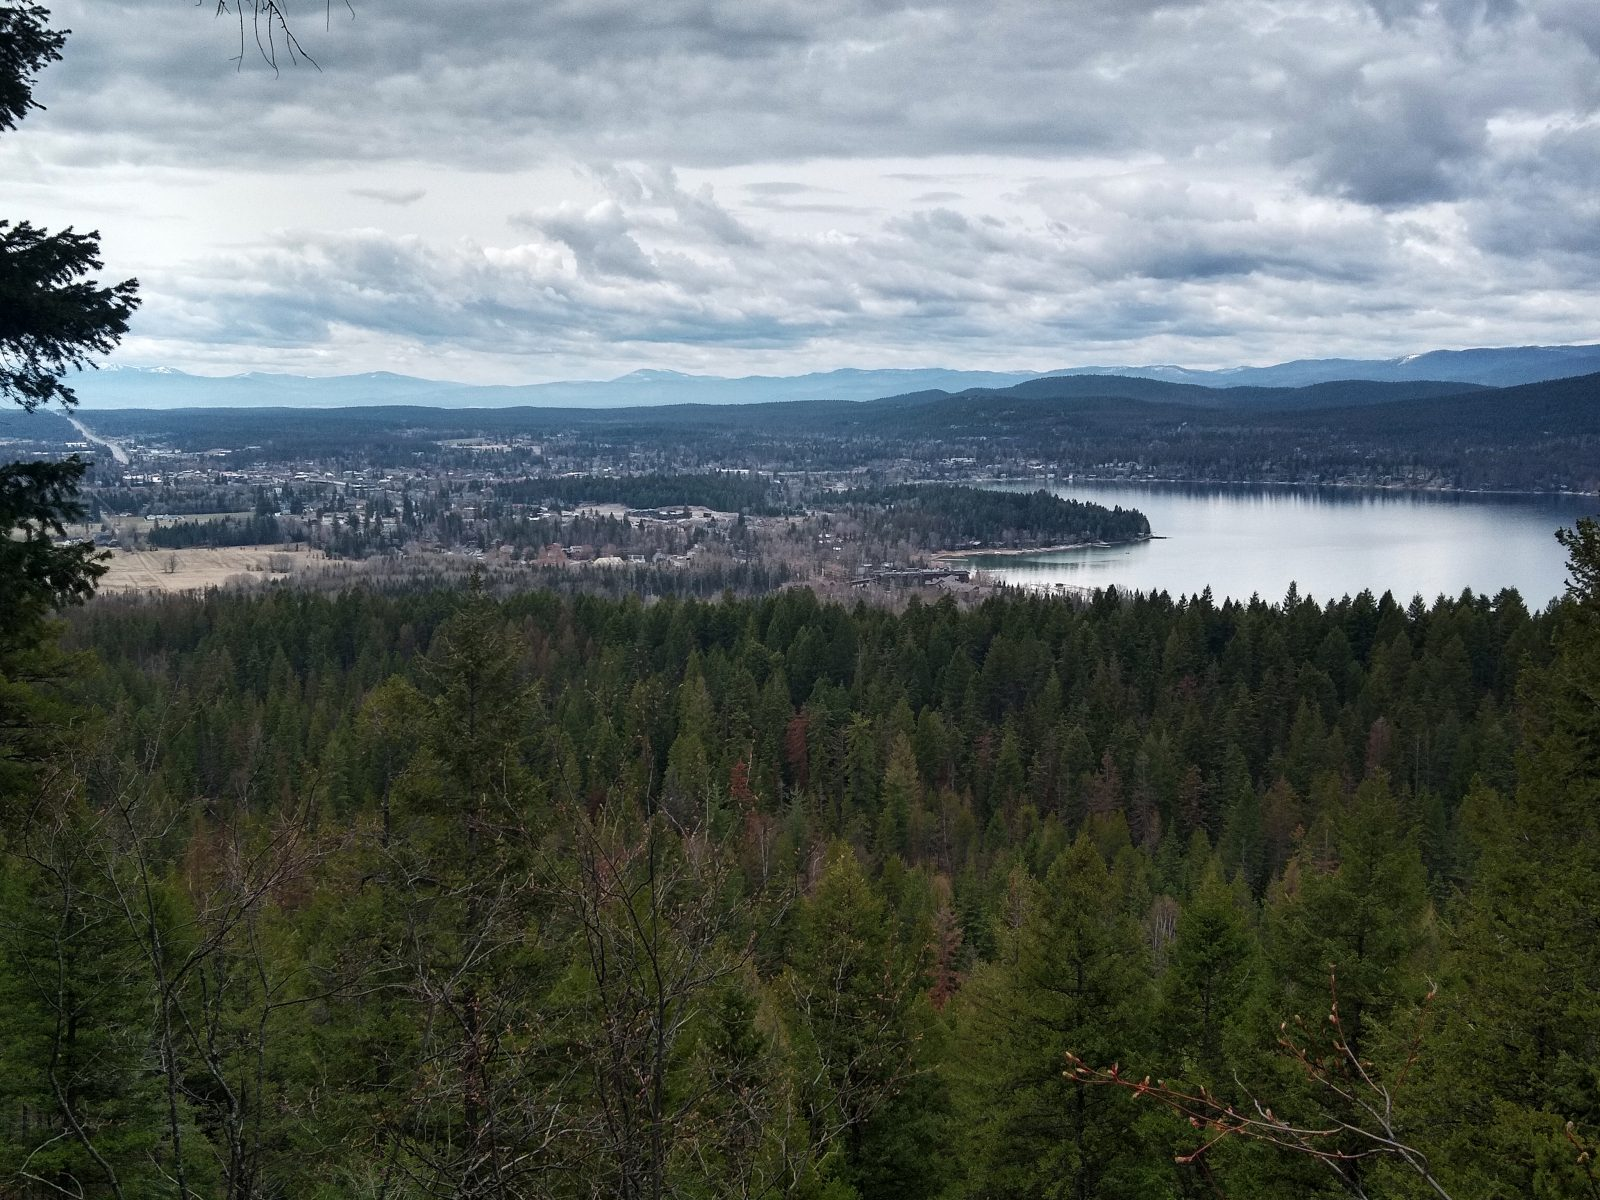 Whitefish Lake - April 25, 2020